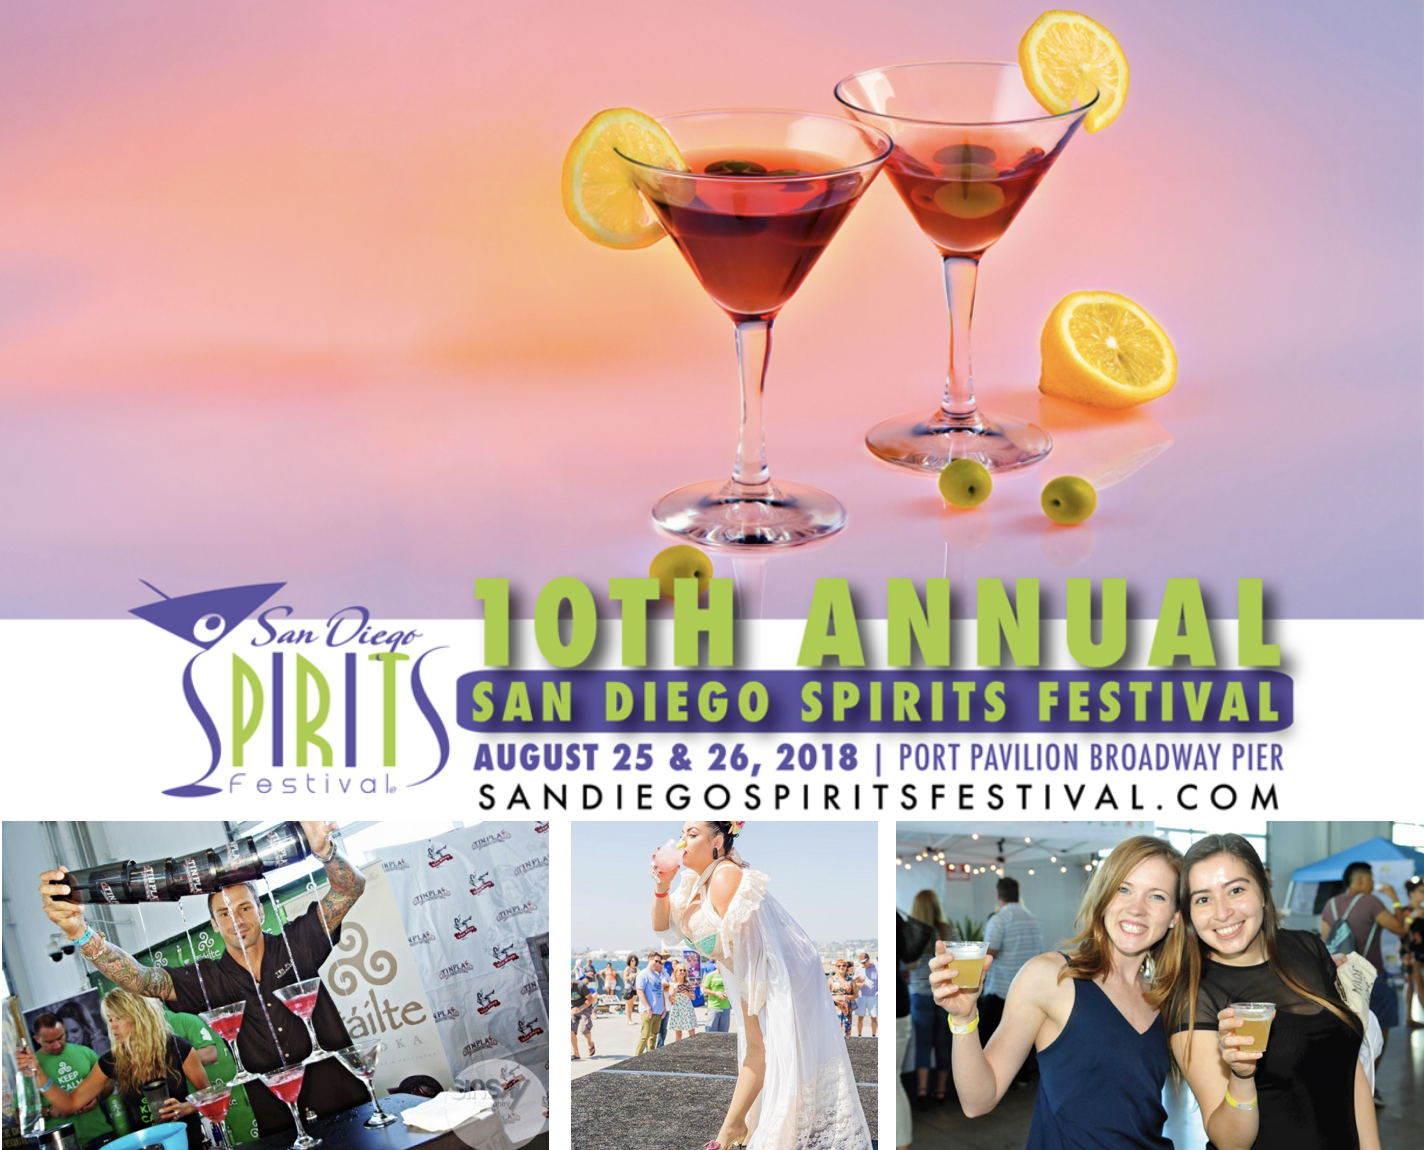 Save on passes & Enter to win tickets to the San Diego Spirits Festival - August 25 & 26!